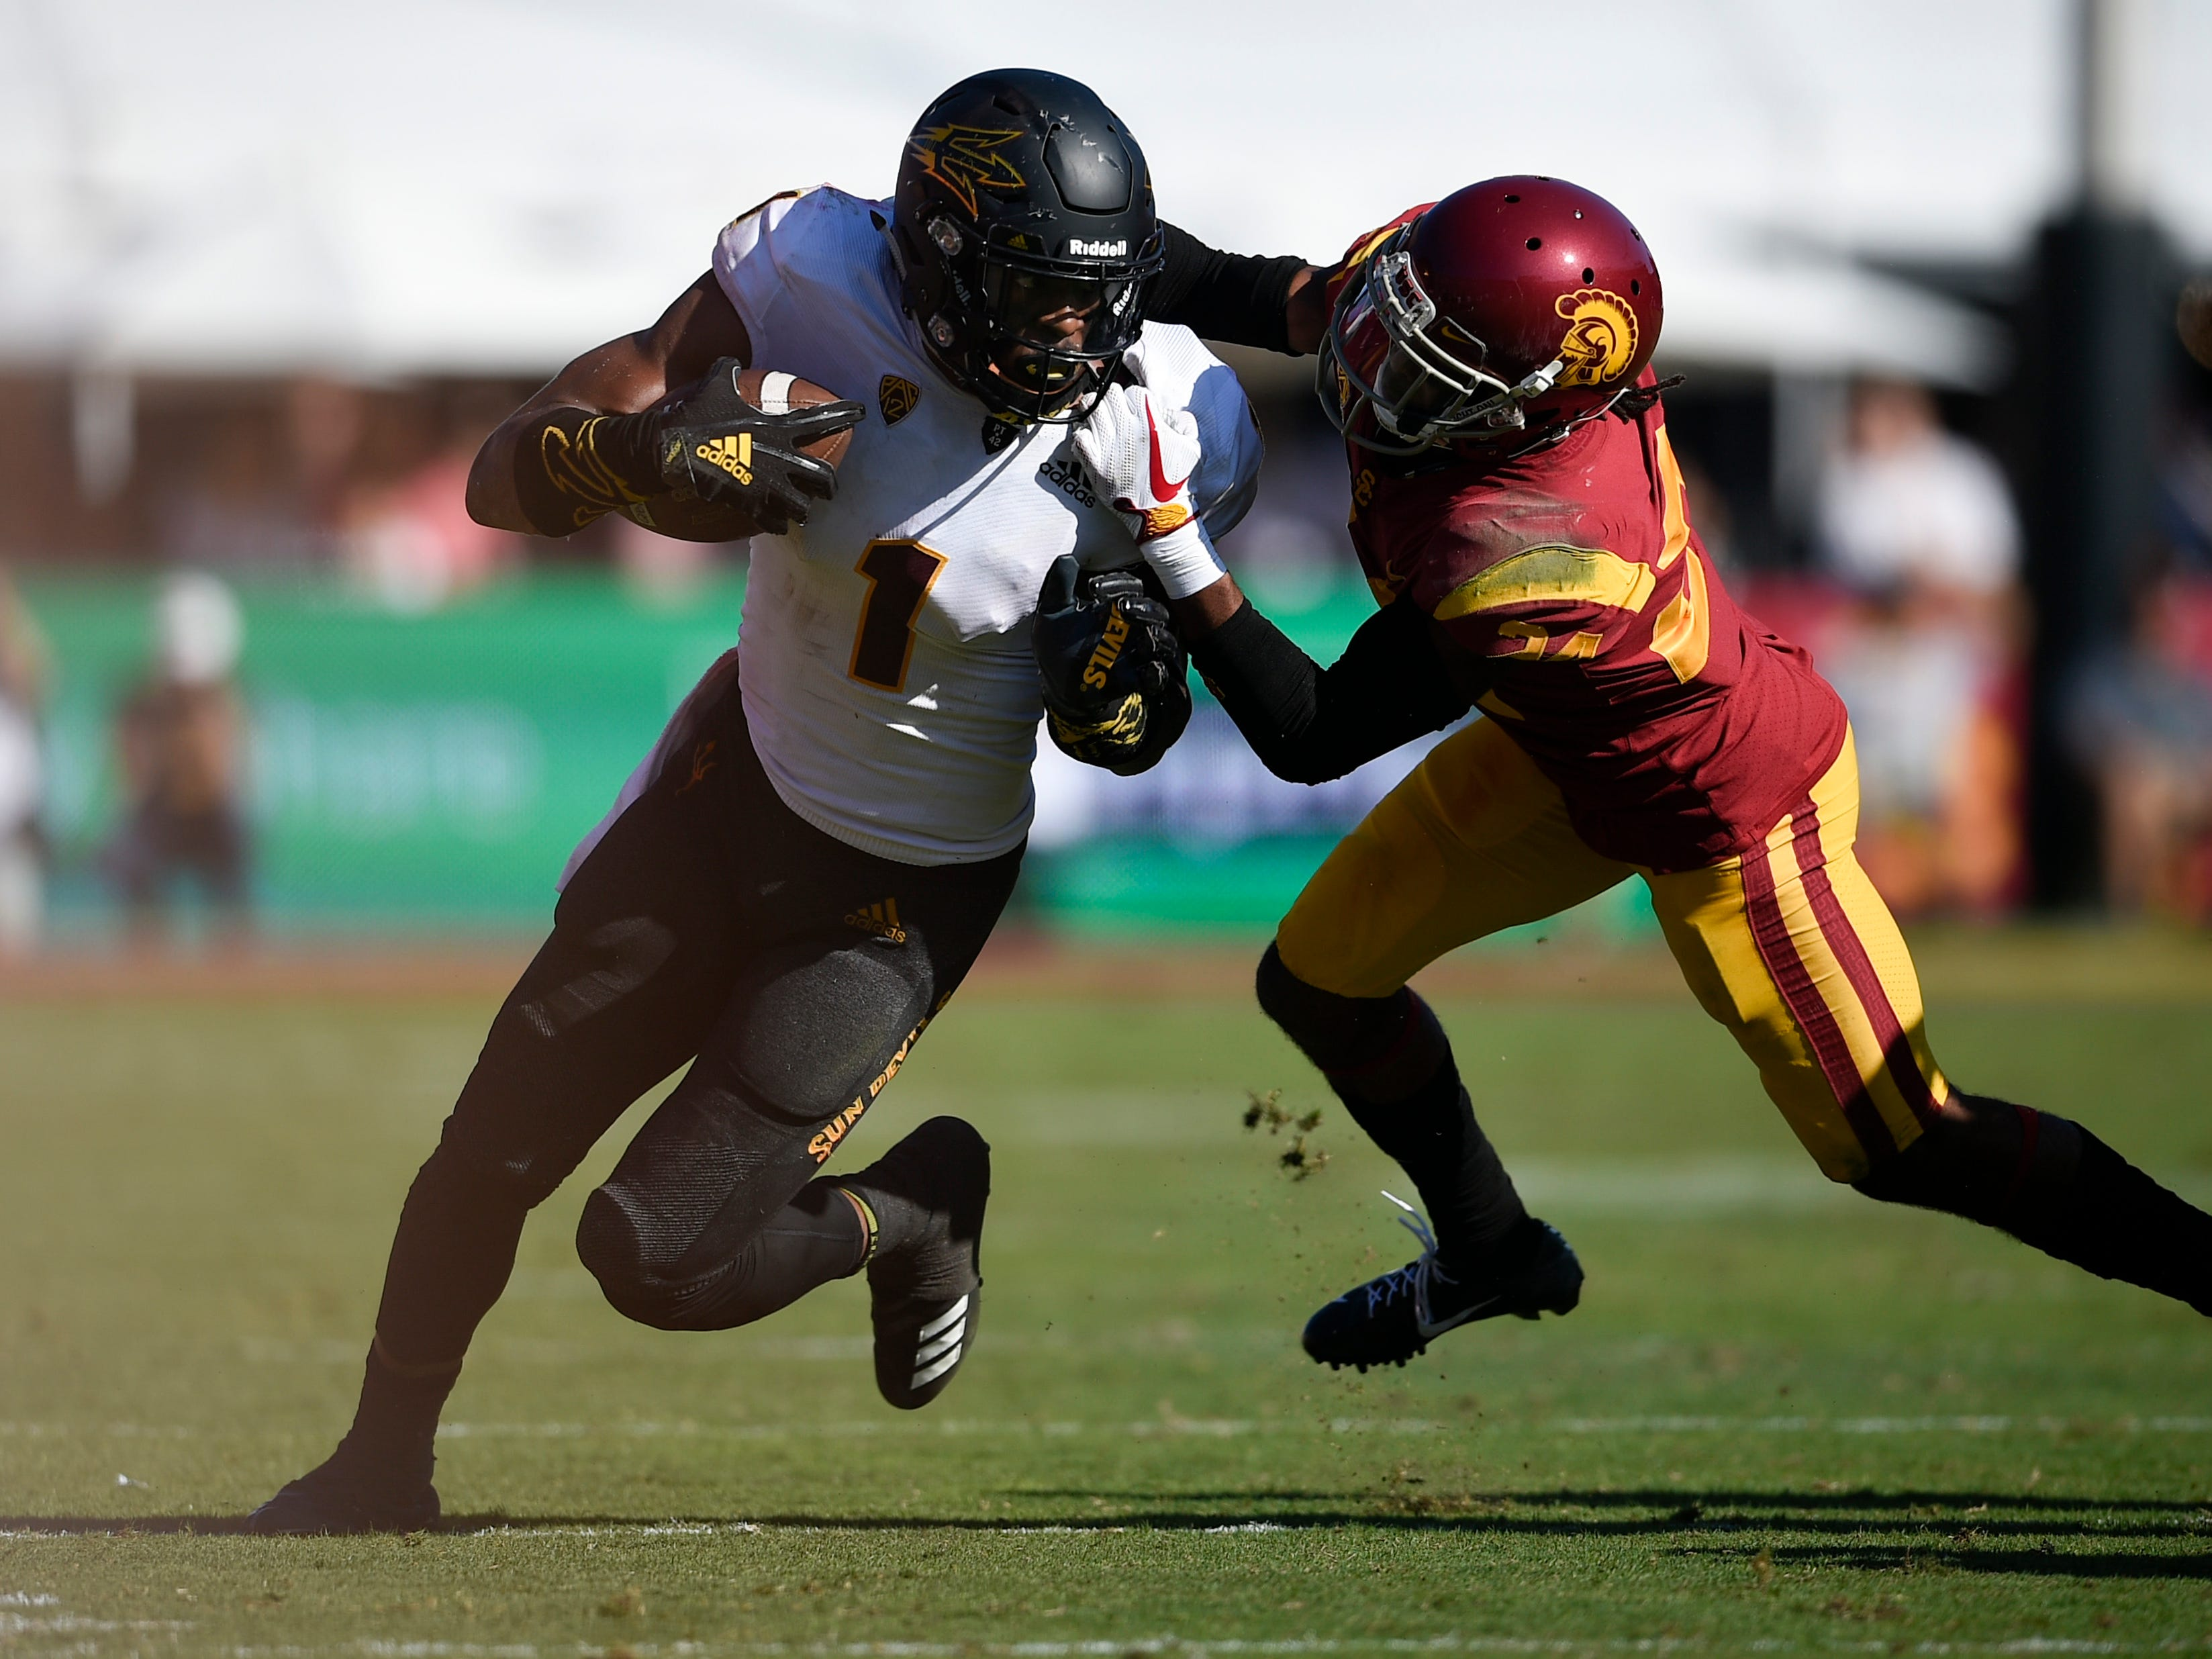 Oct 27, 2018; Los Angeles, CA, USA; Arizona State Sun Devils wide receiver N'Keal Harry (1) runs after a catch defended by Southern California Trojans linebacker Eli'jah Winston (34) during the second half at Los Angeles Memorial Coliseum. Mandatory Credit: Kelvin Kuo-USA TODAY Sports